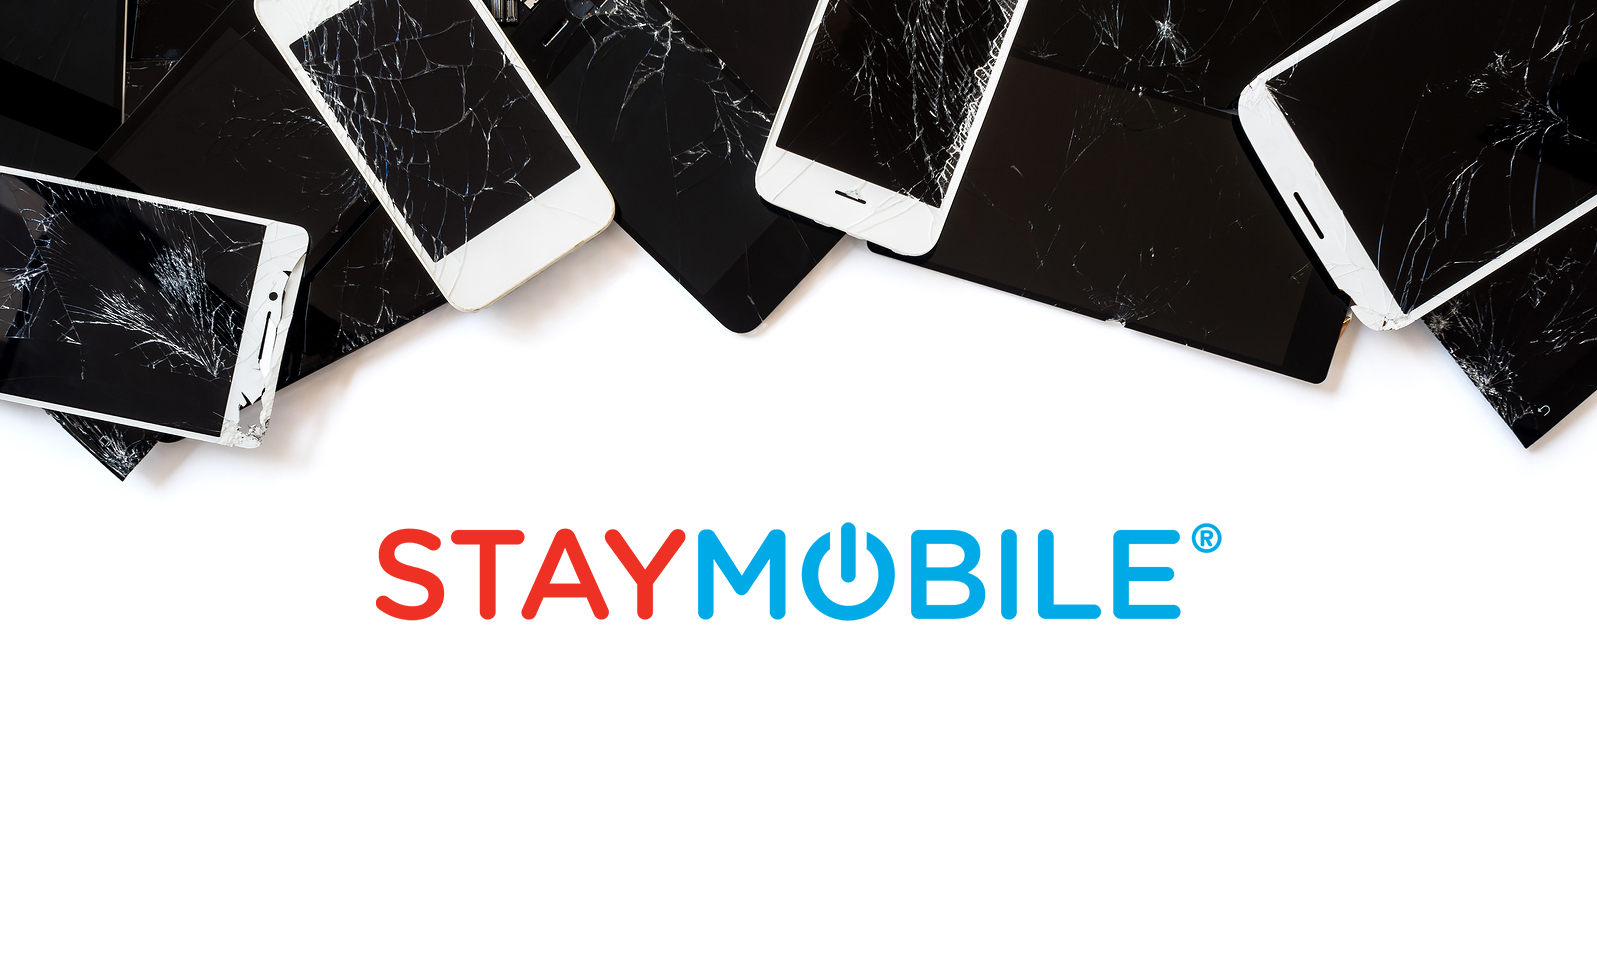 Iphone & Android Cell Phone Repair Near Me | Staymobile